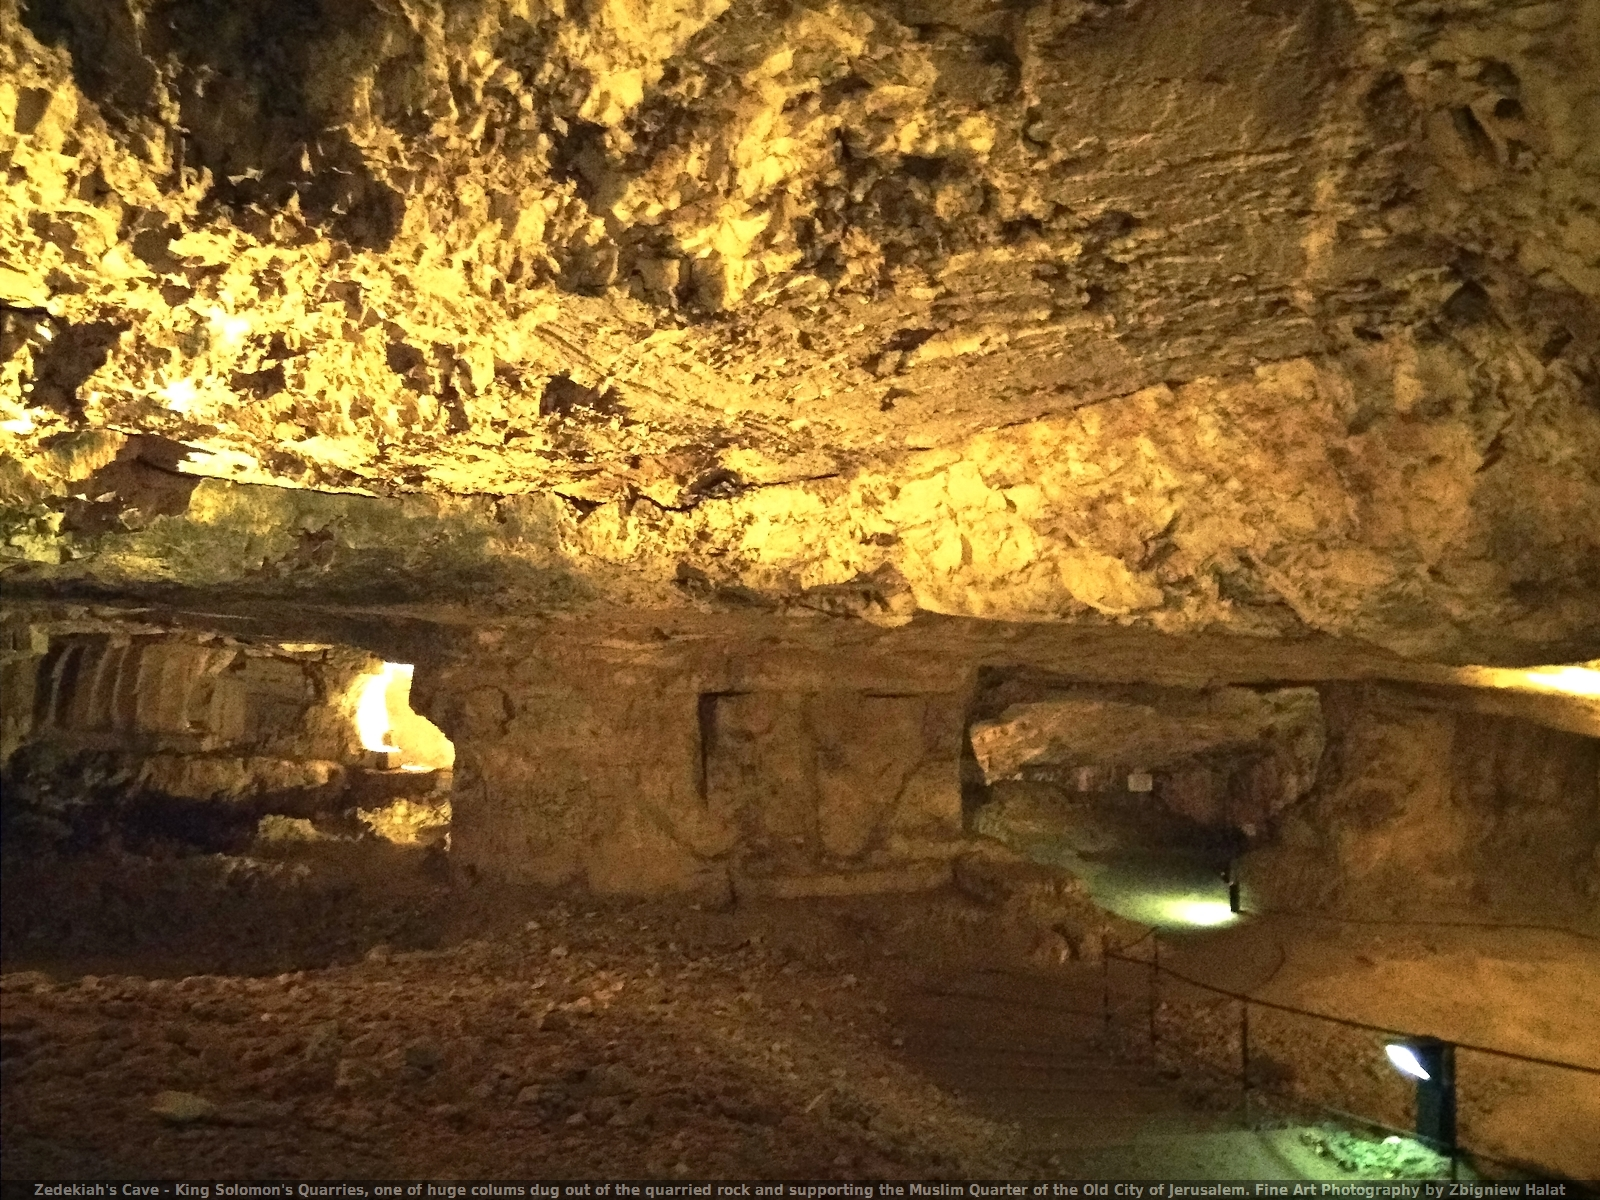 Zedekiah's Cave - King Solomon's Quarries, one of huge colums dug out of the quarried rock supporting the Muslim Quarter of the Old City of Jerusalem. Fine Art Photography by Zbigniew Halat